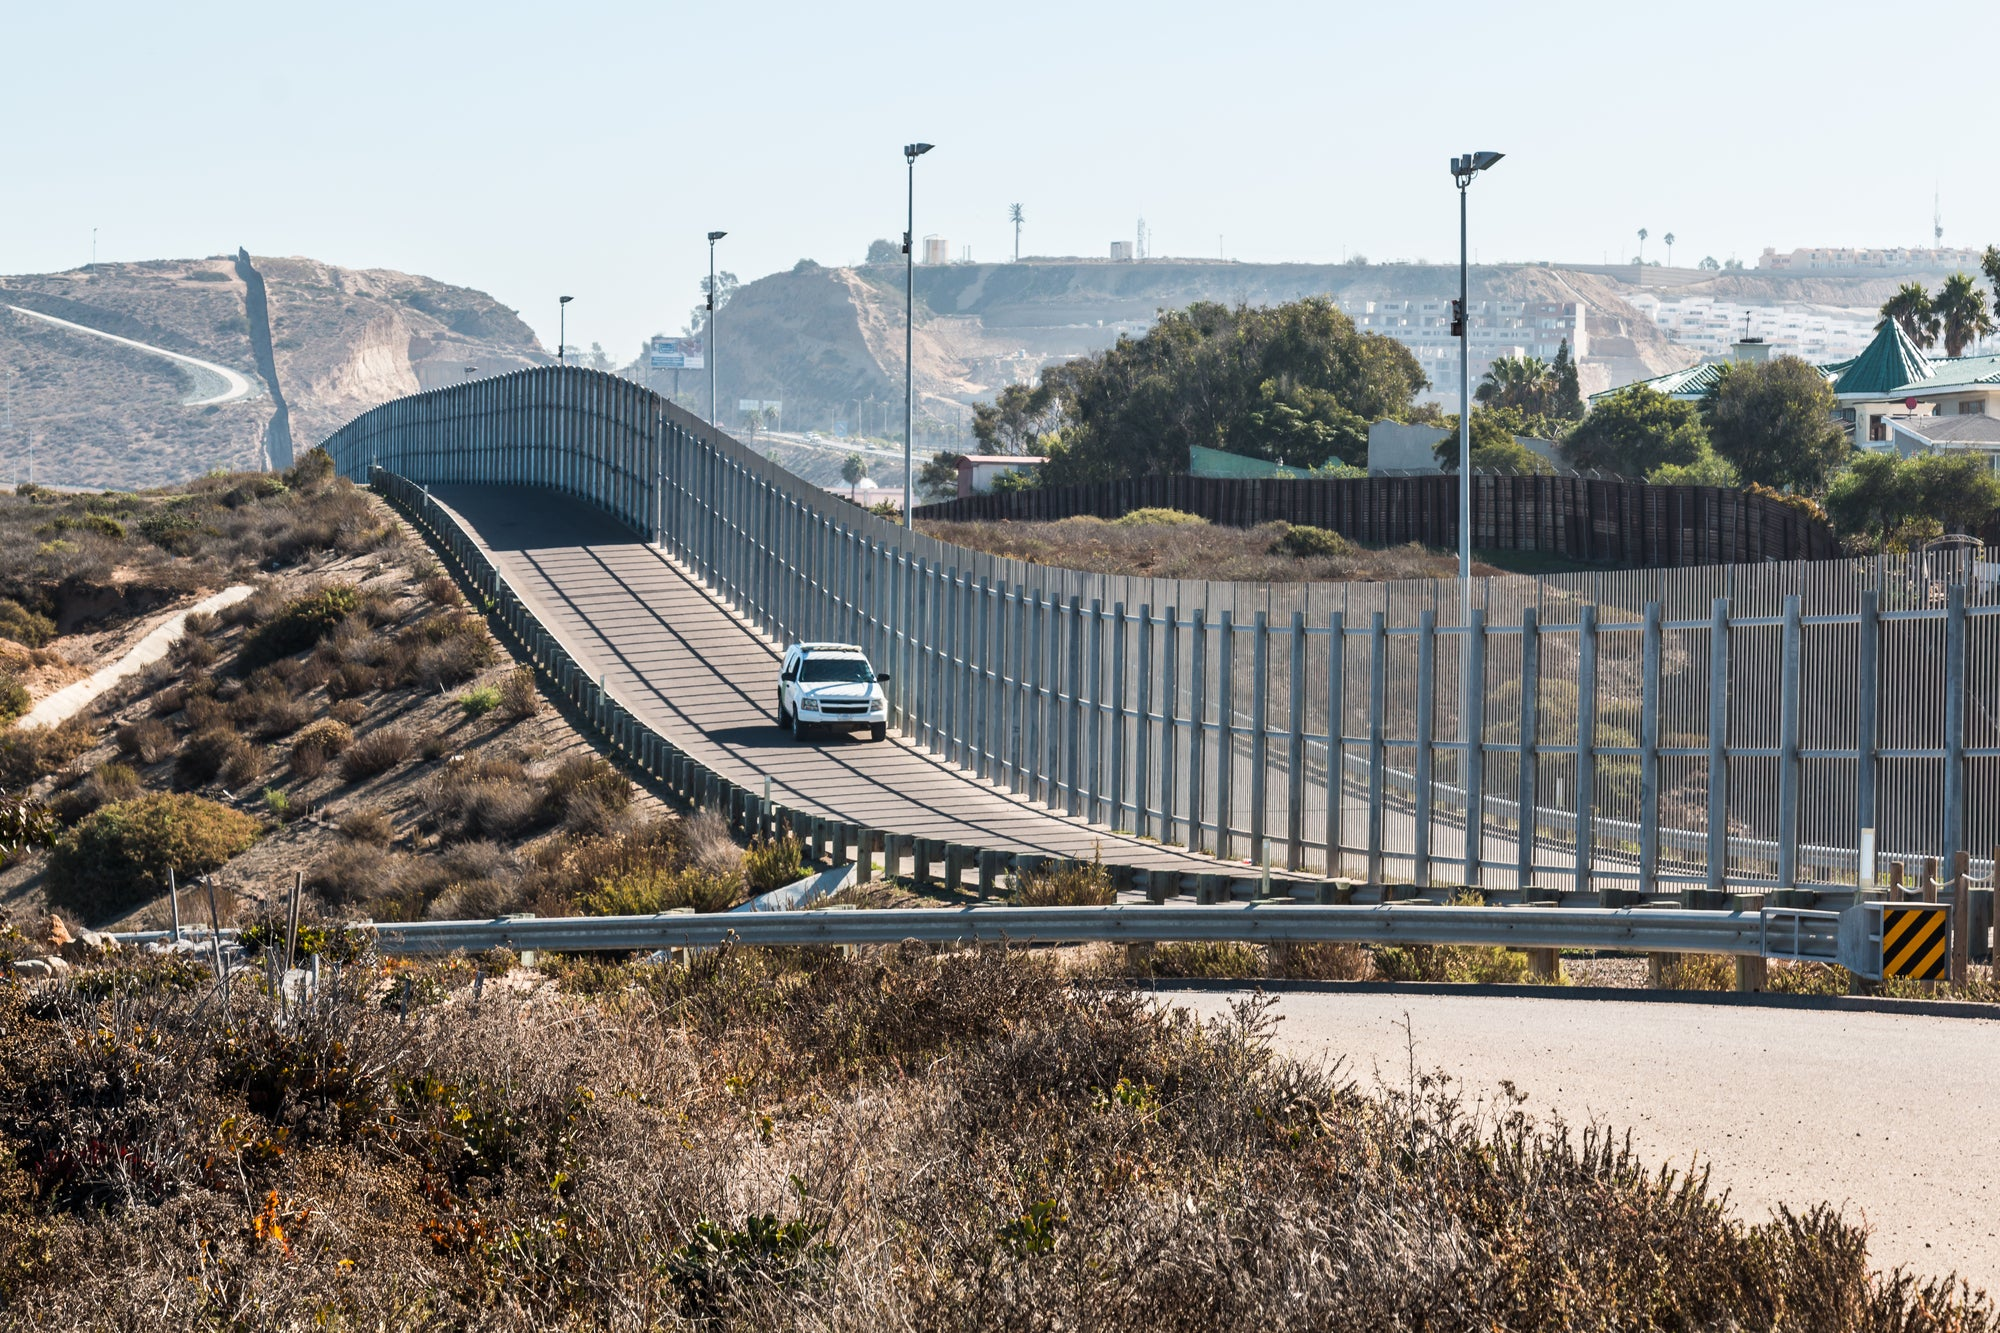 The US-Mexico border wall in Tijuana and San Diego